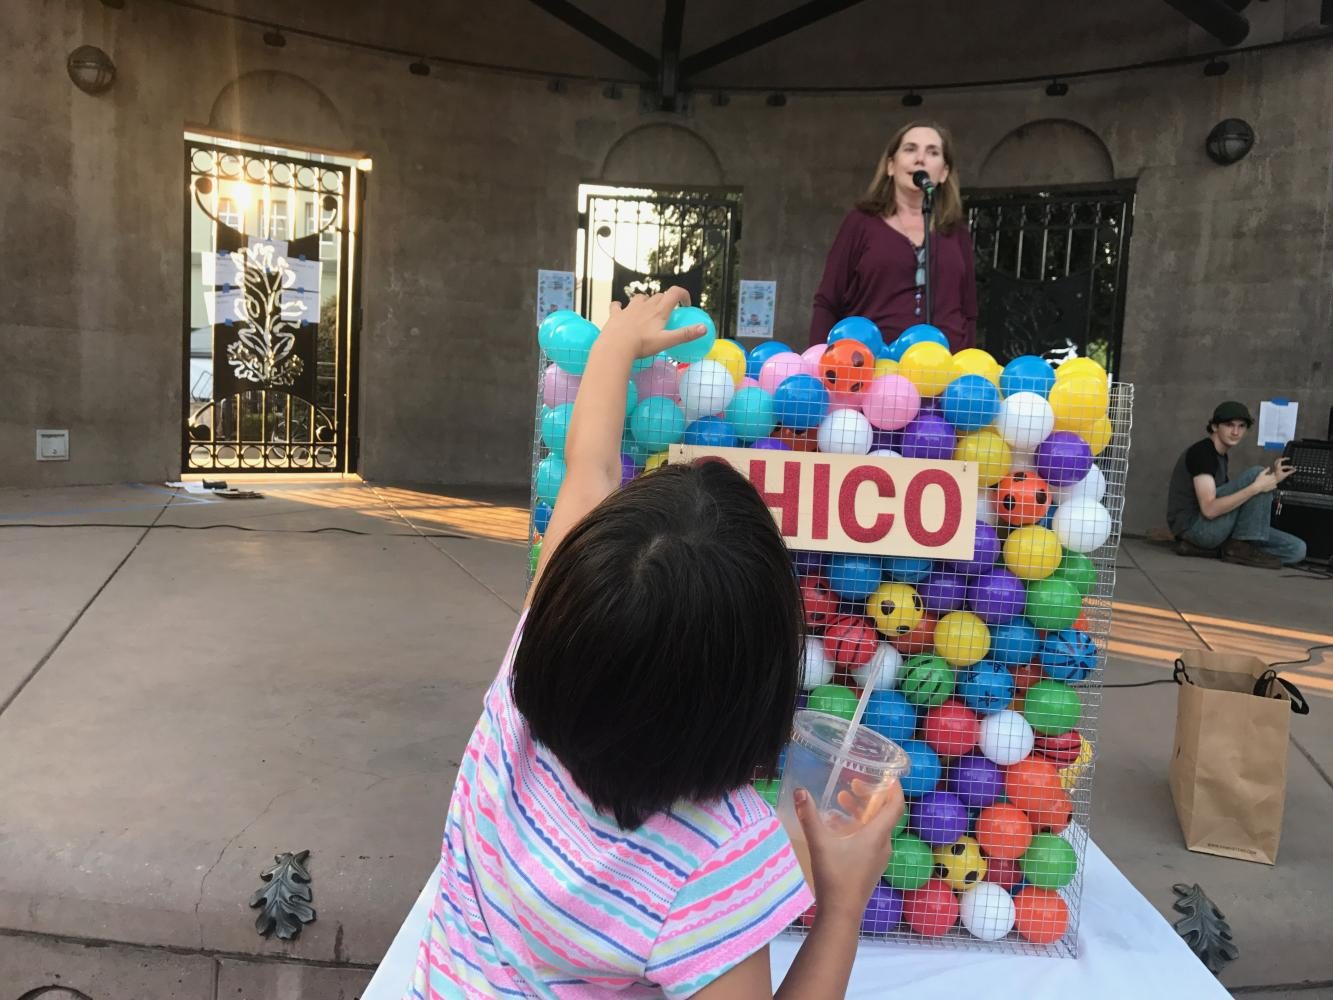 Little+girl+places+ball+in+community+basket.+Photo+credit%3A+Christian+Solis